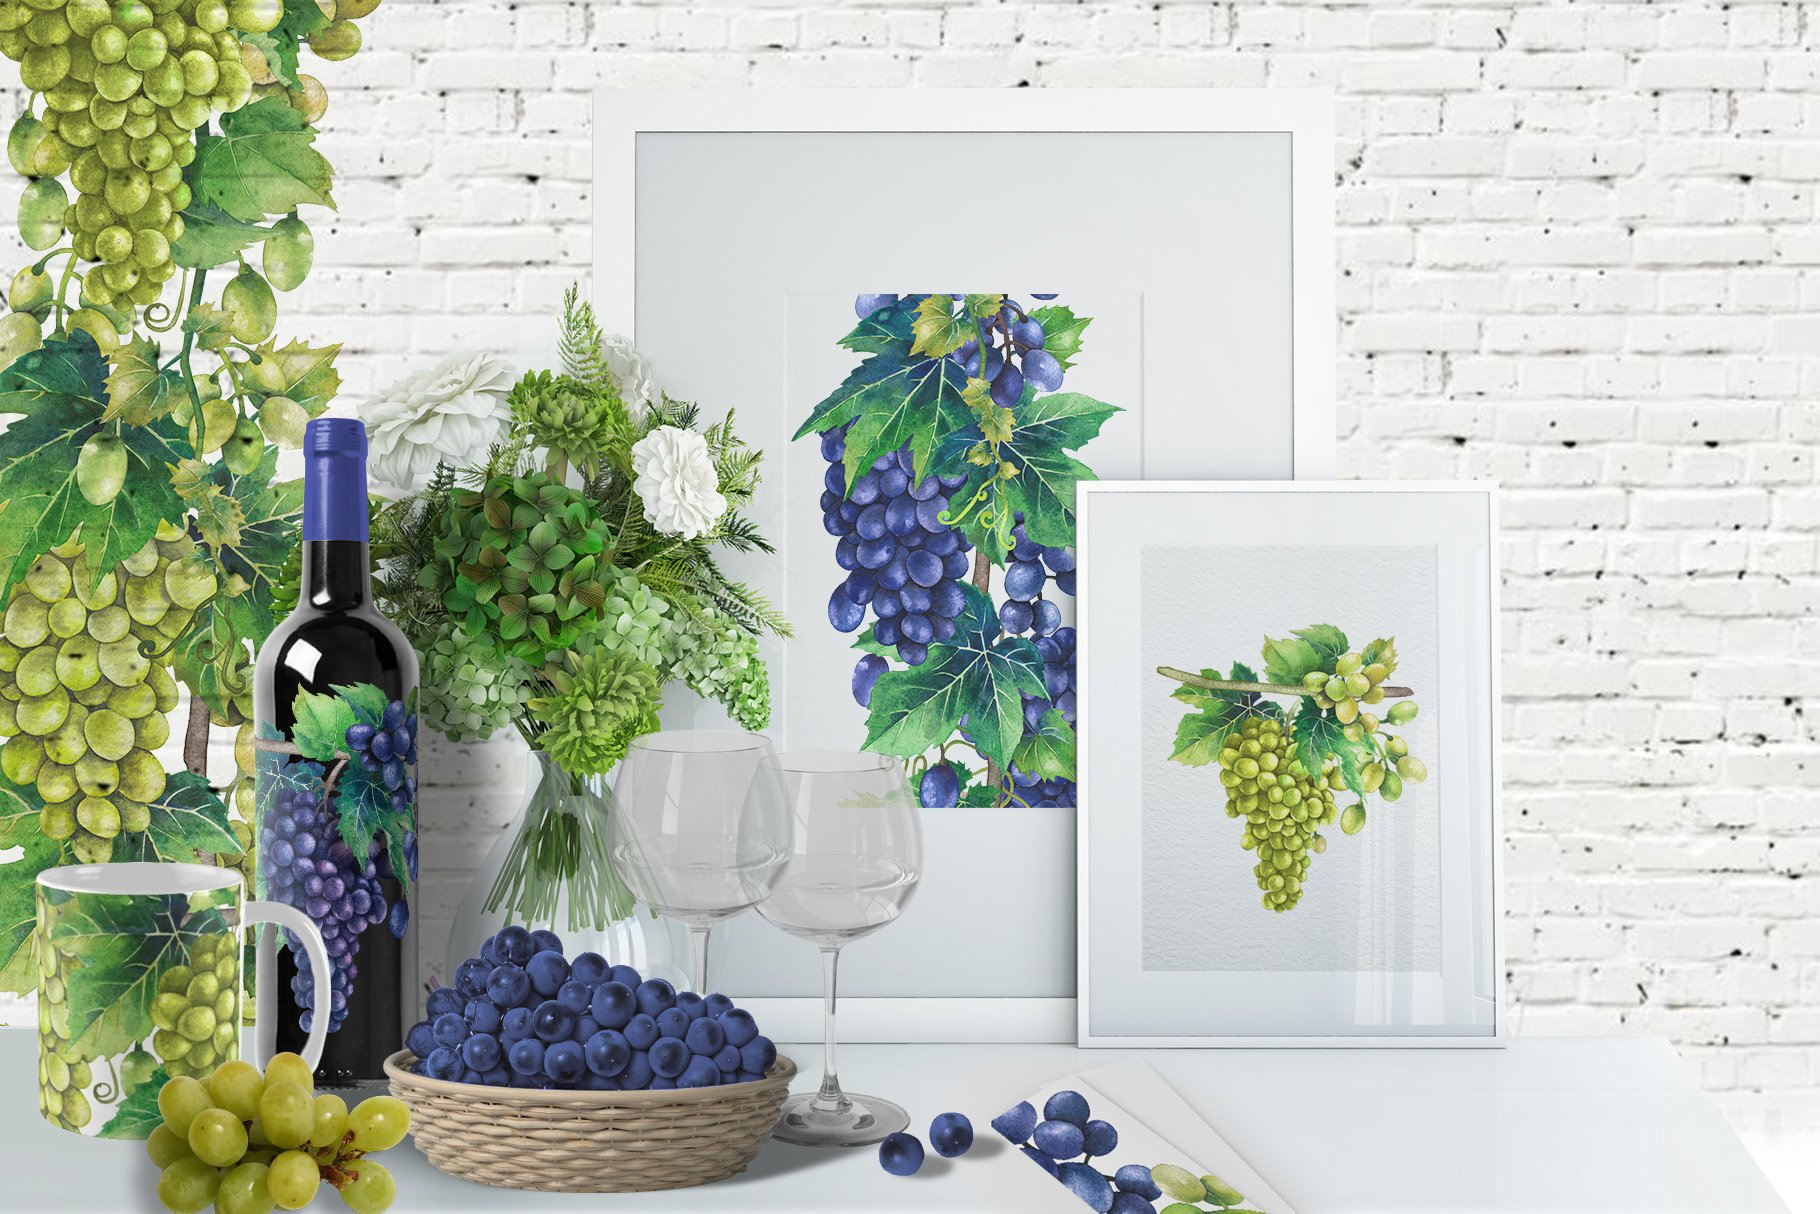 Watercolor Grapes example image 3